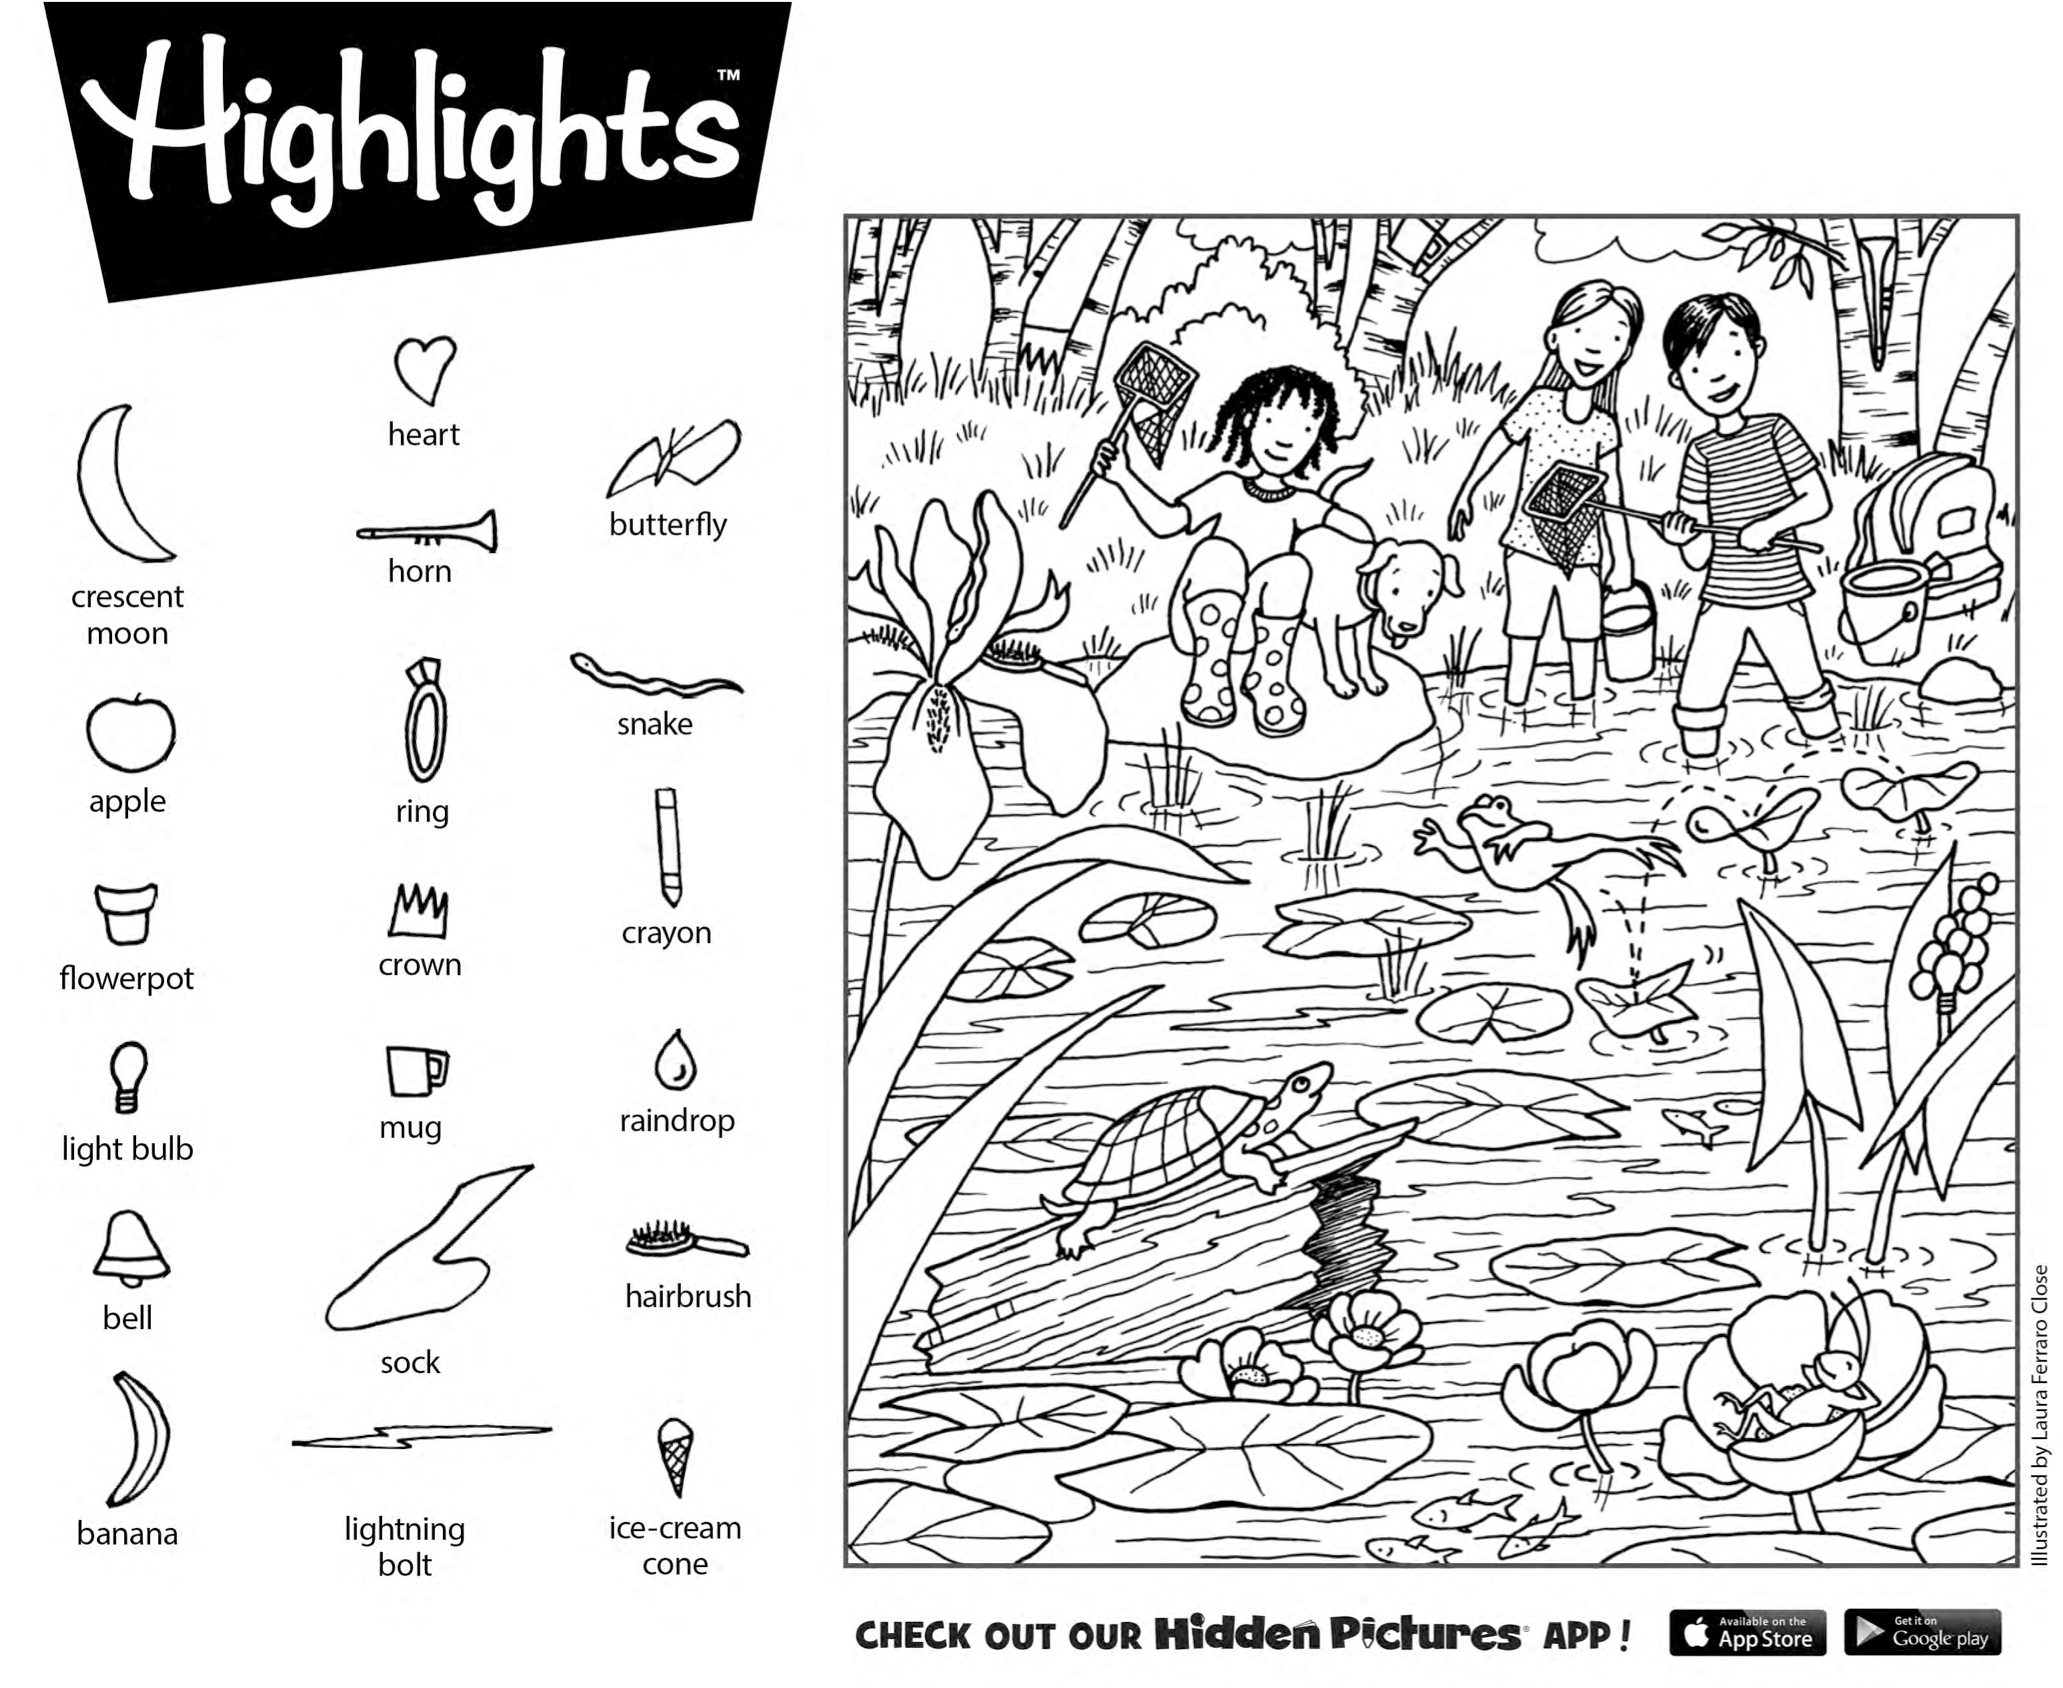 Hidden Pictures Printables Download This Free Printable Puzzle From - Free Printable Highlights Hidden Pictures